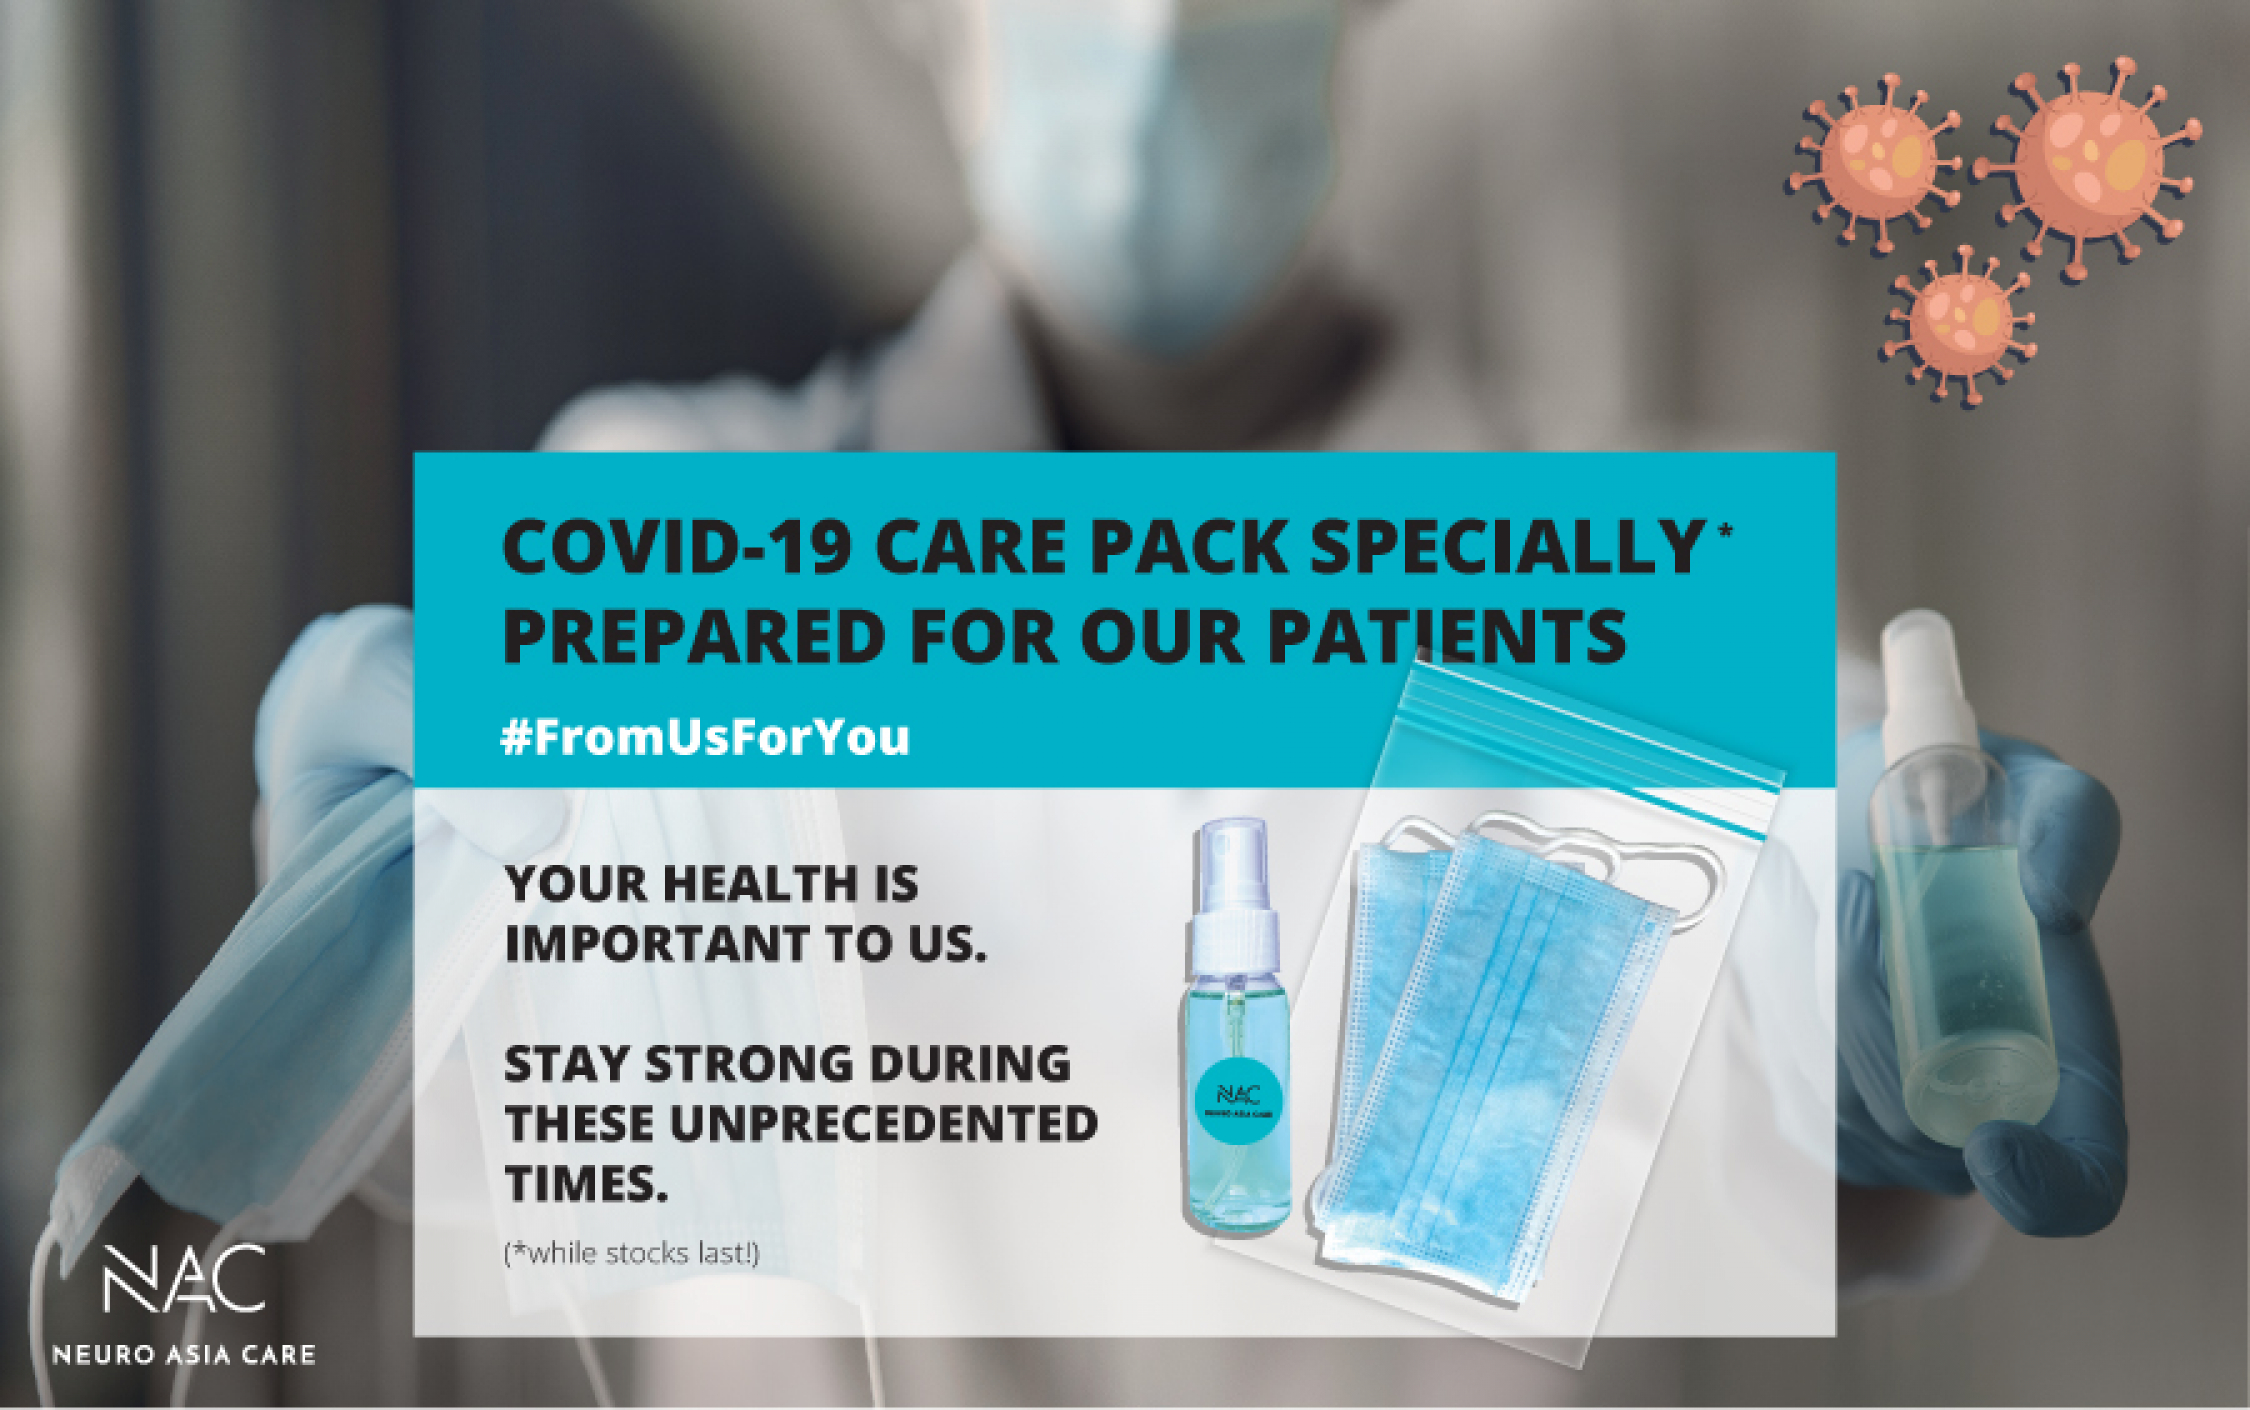 Neuro Asia Care Covid-19 Care Pack